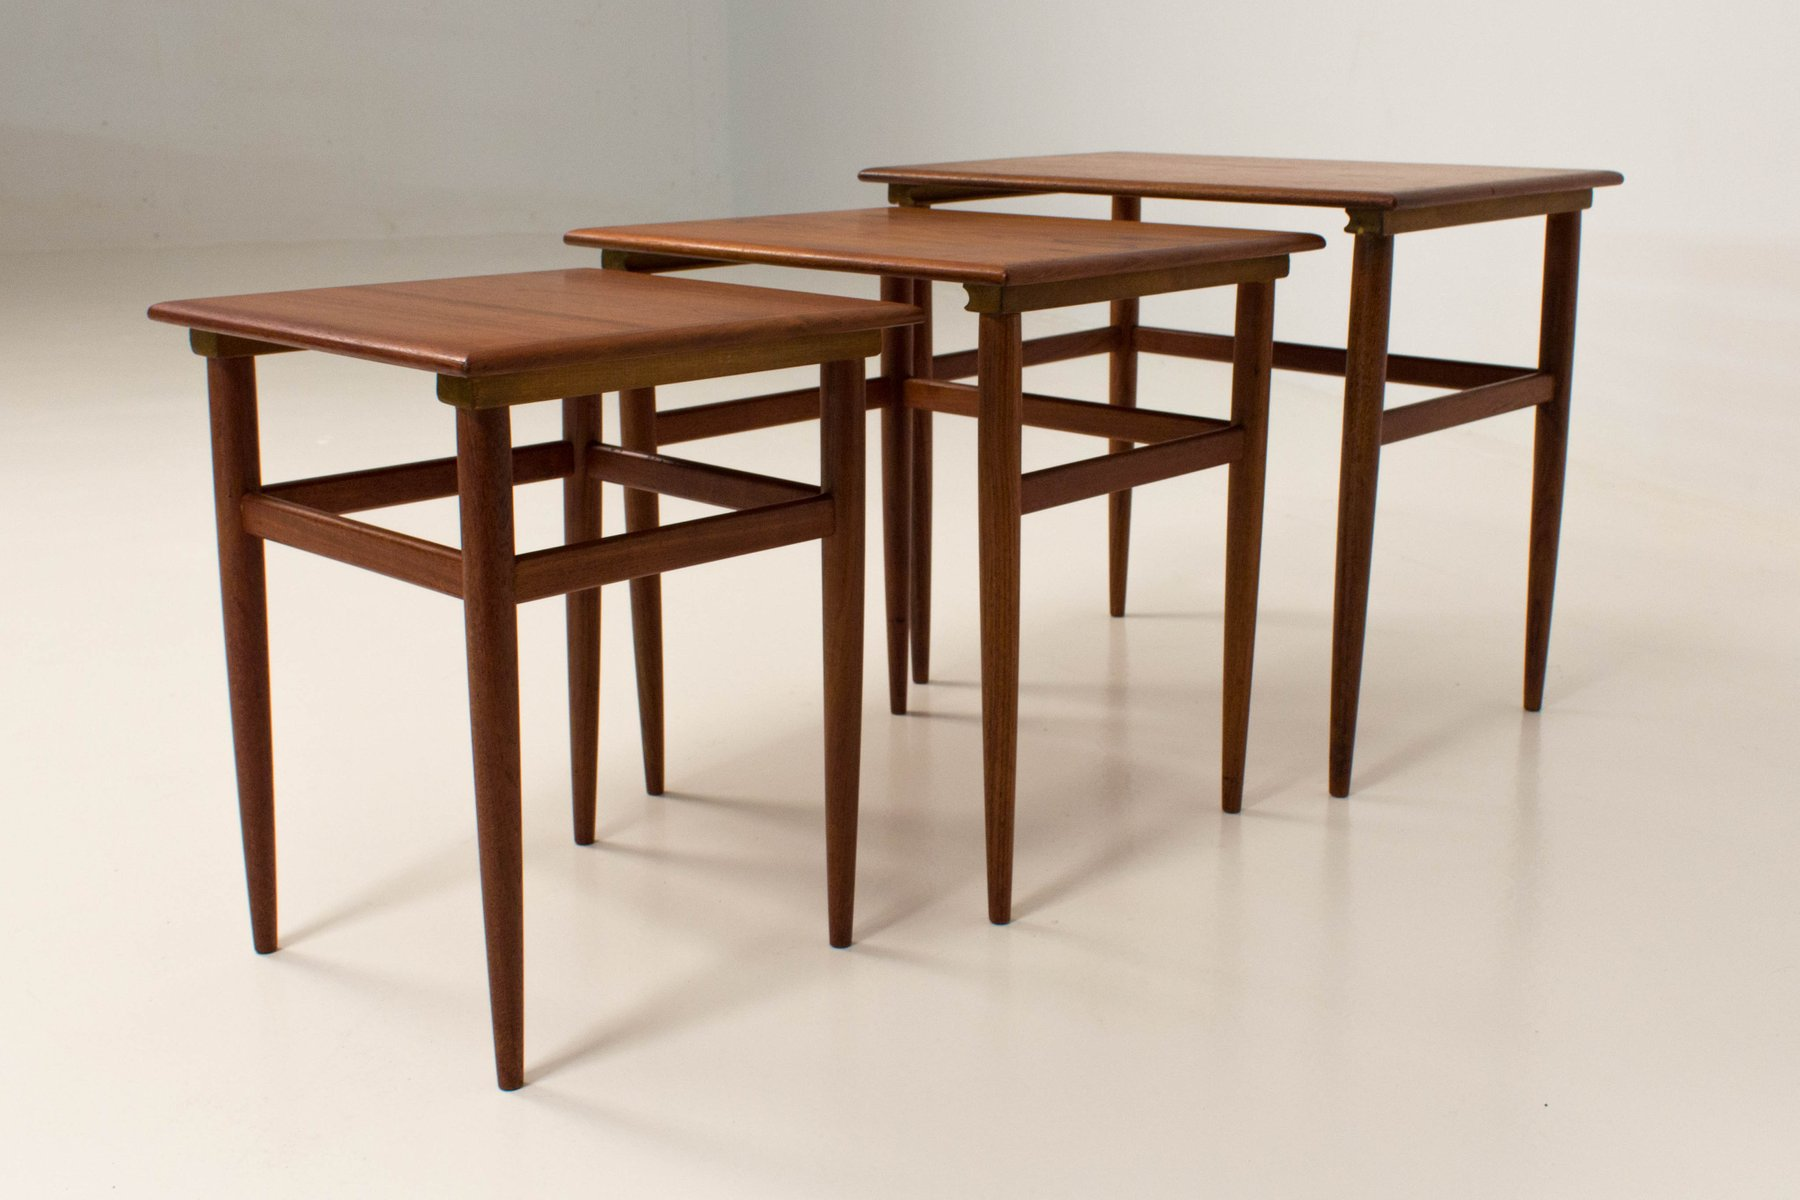 Amazing photo of Mid Century Modern Danish Nesting Tables 1960s for sale at Pamono with #411E0C color and 1800x1200 pixels